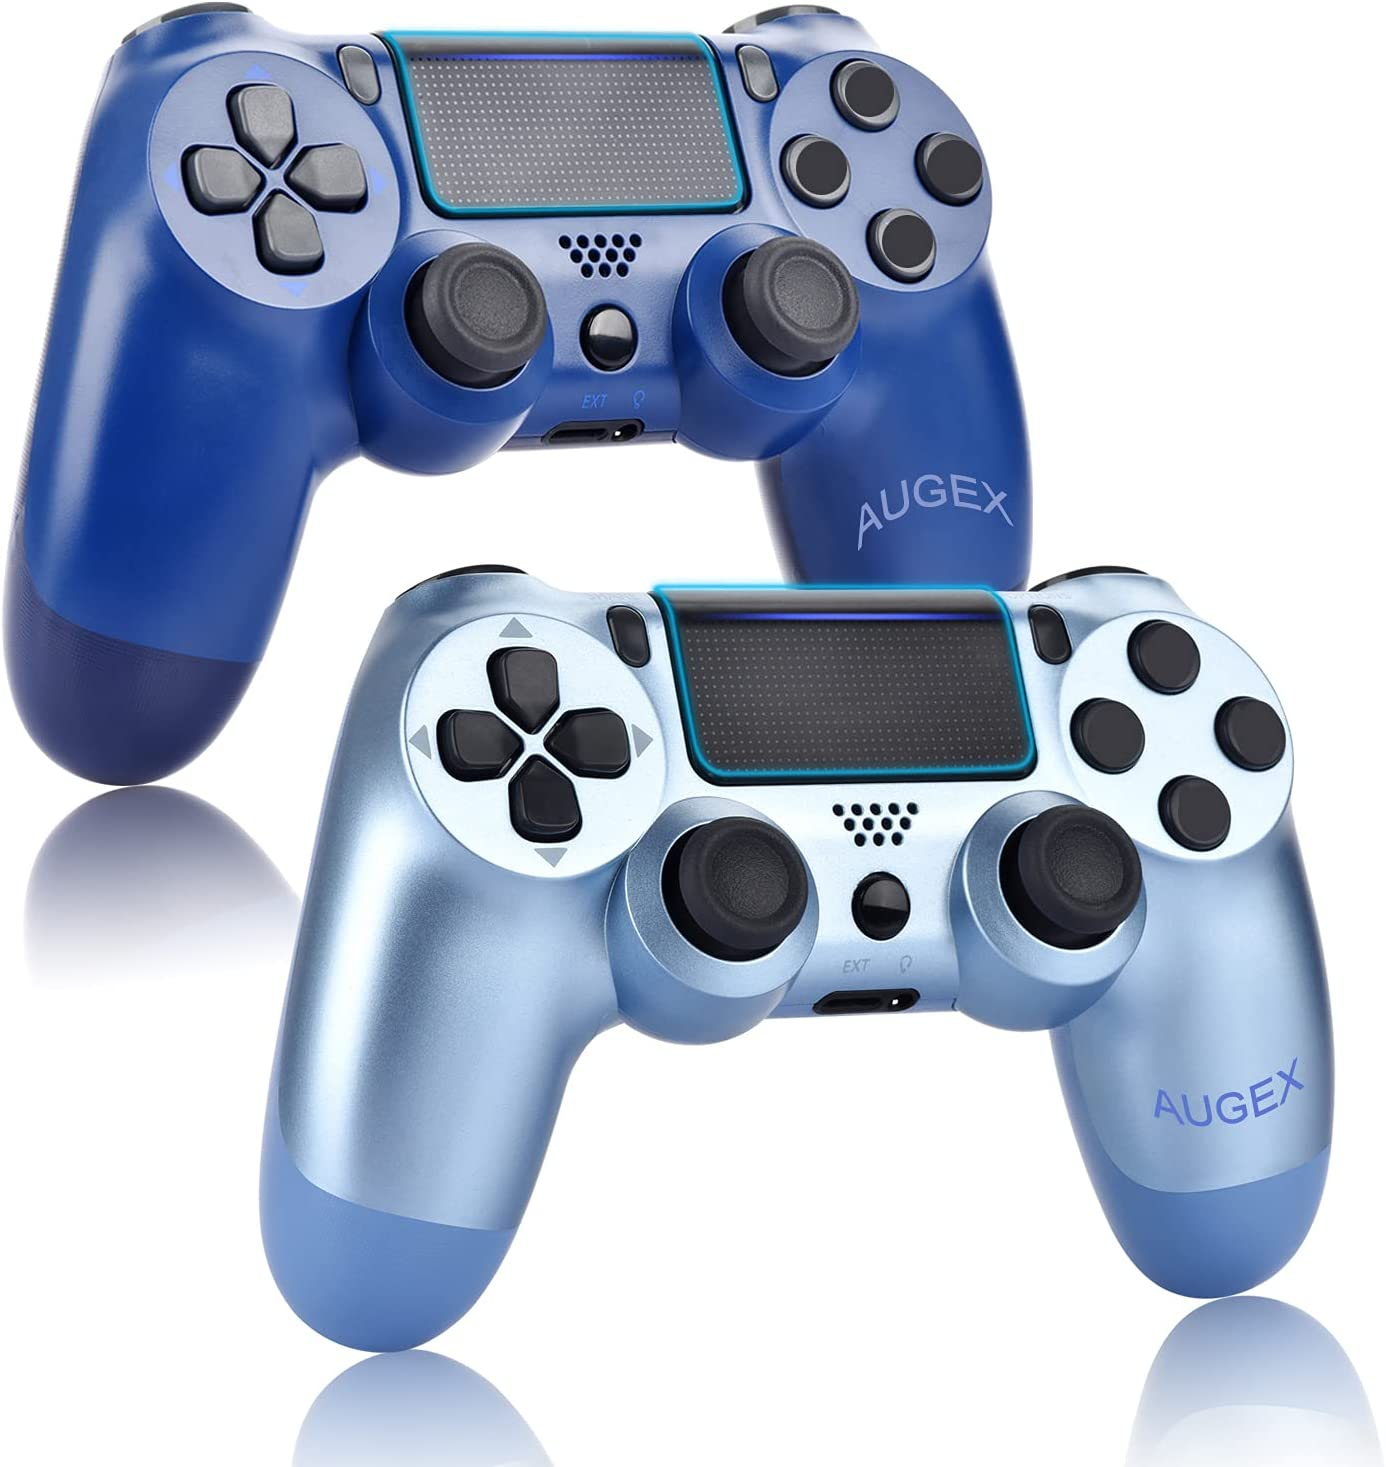 AUGEX 2 Pack Game Controllers Compatible for PS4,Wireless Controller Work with Playstation 4 Console;AUGEX Remote Control with Two Motors Game Joystick(Midnight Blue)